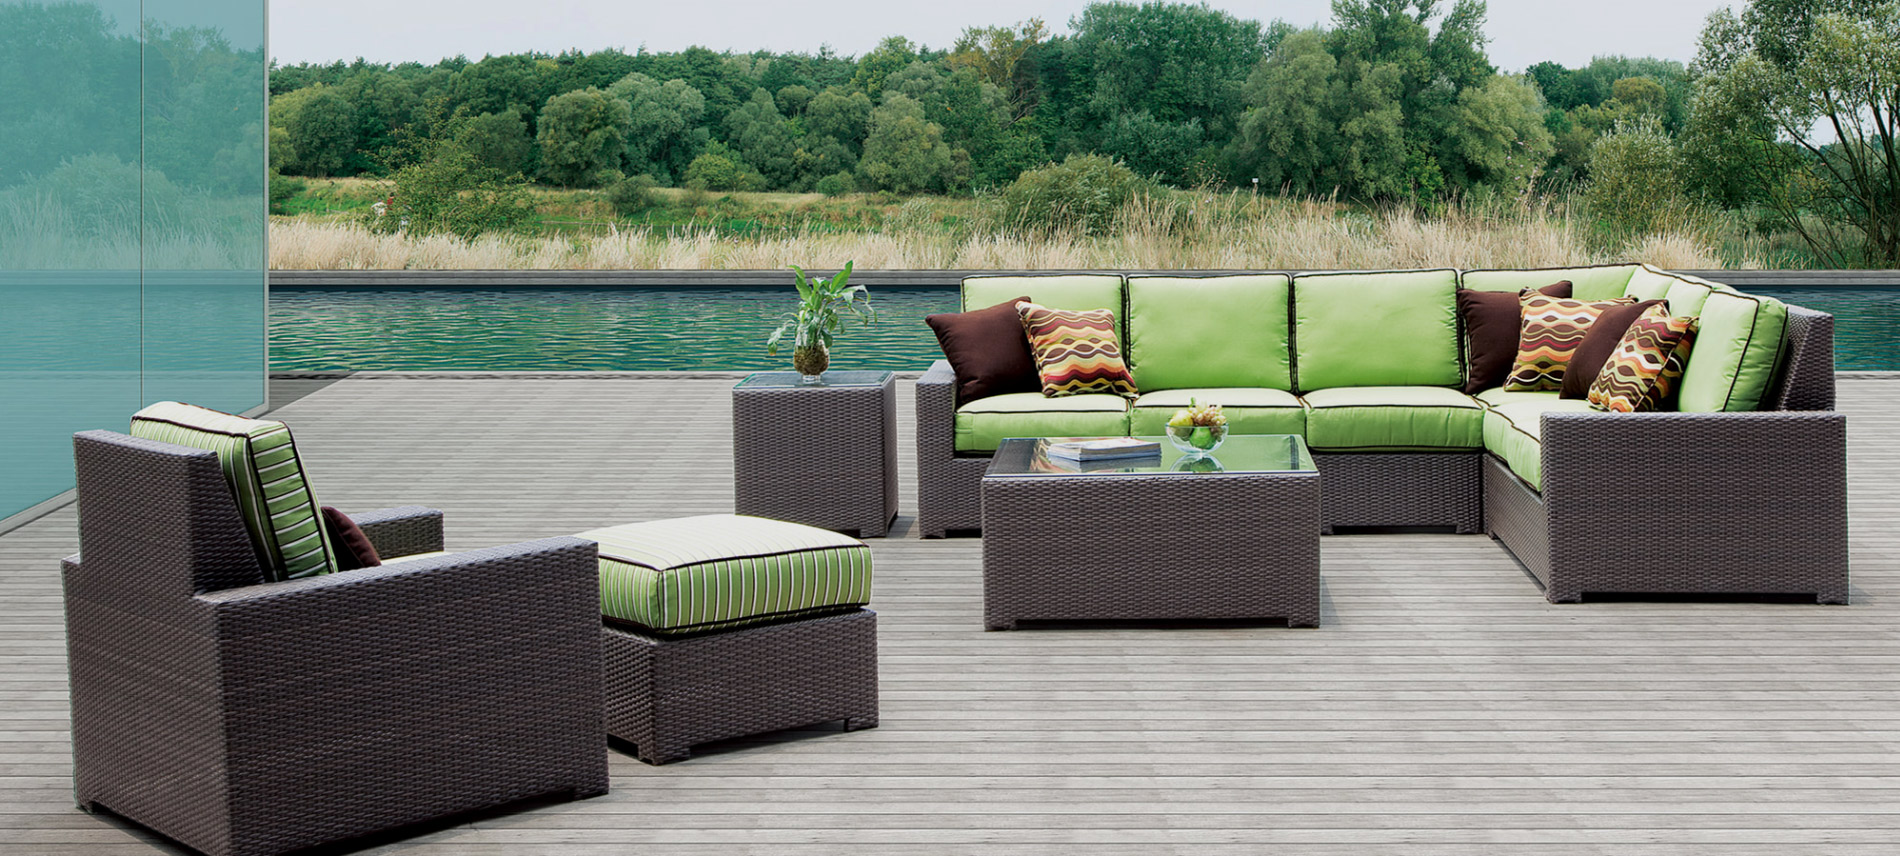 Erwin & Sons - Sonoma - Outdoor Furniture at ABSCO Fireplace & Patio - Birmingham, Alabama